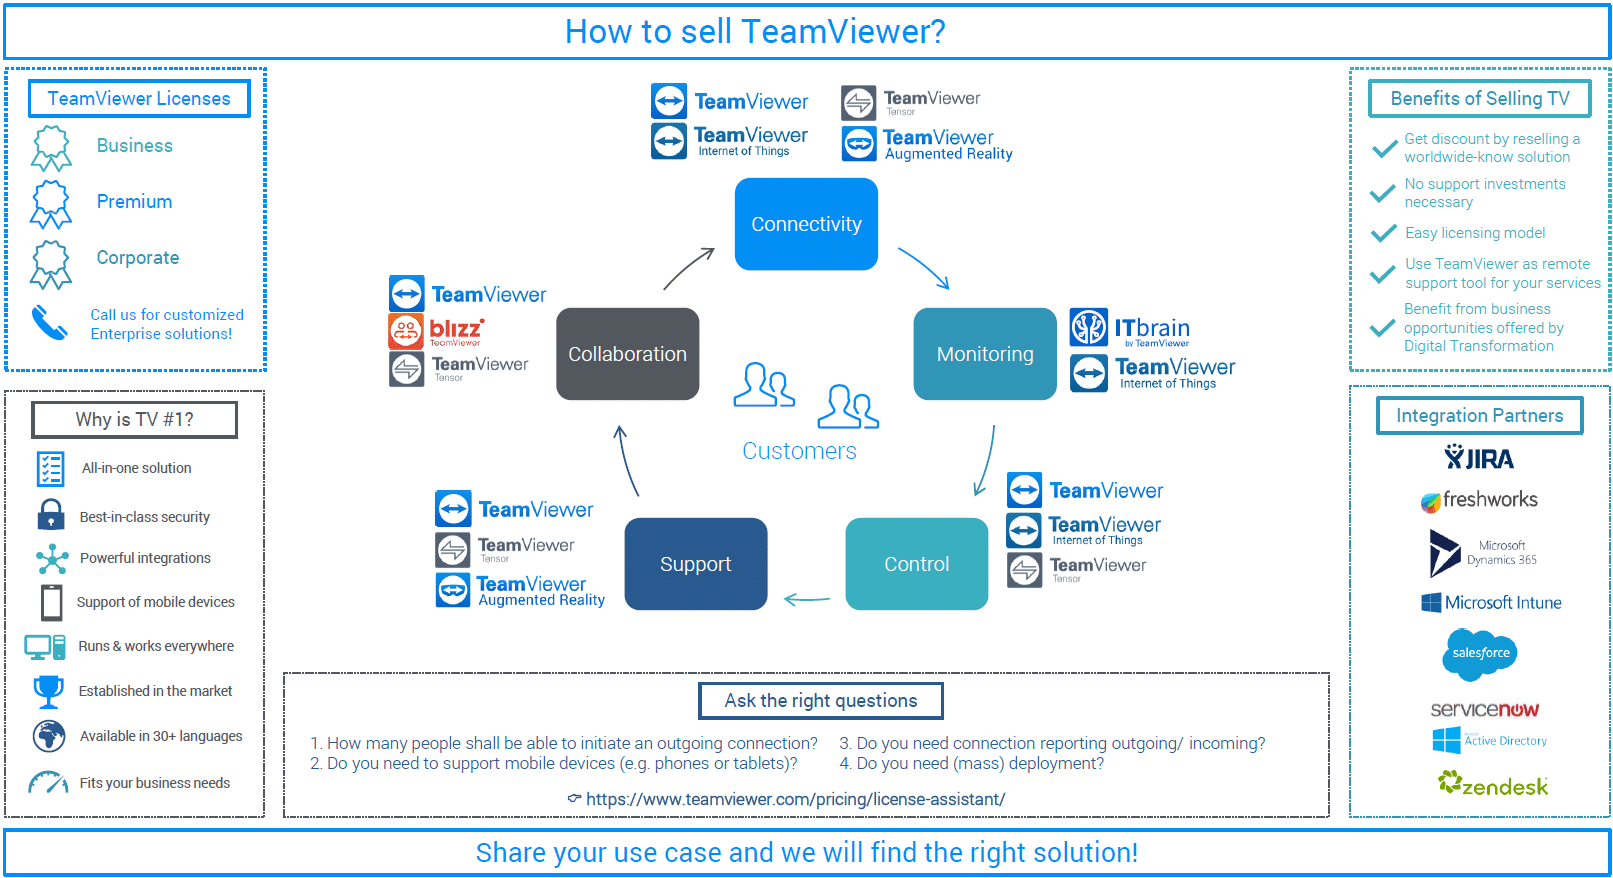 How to sell TeamViewer